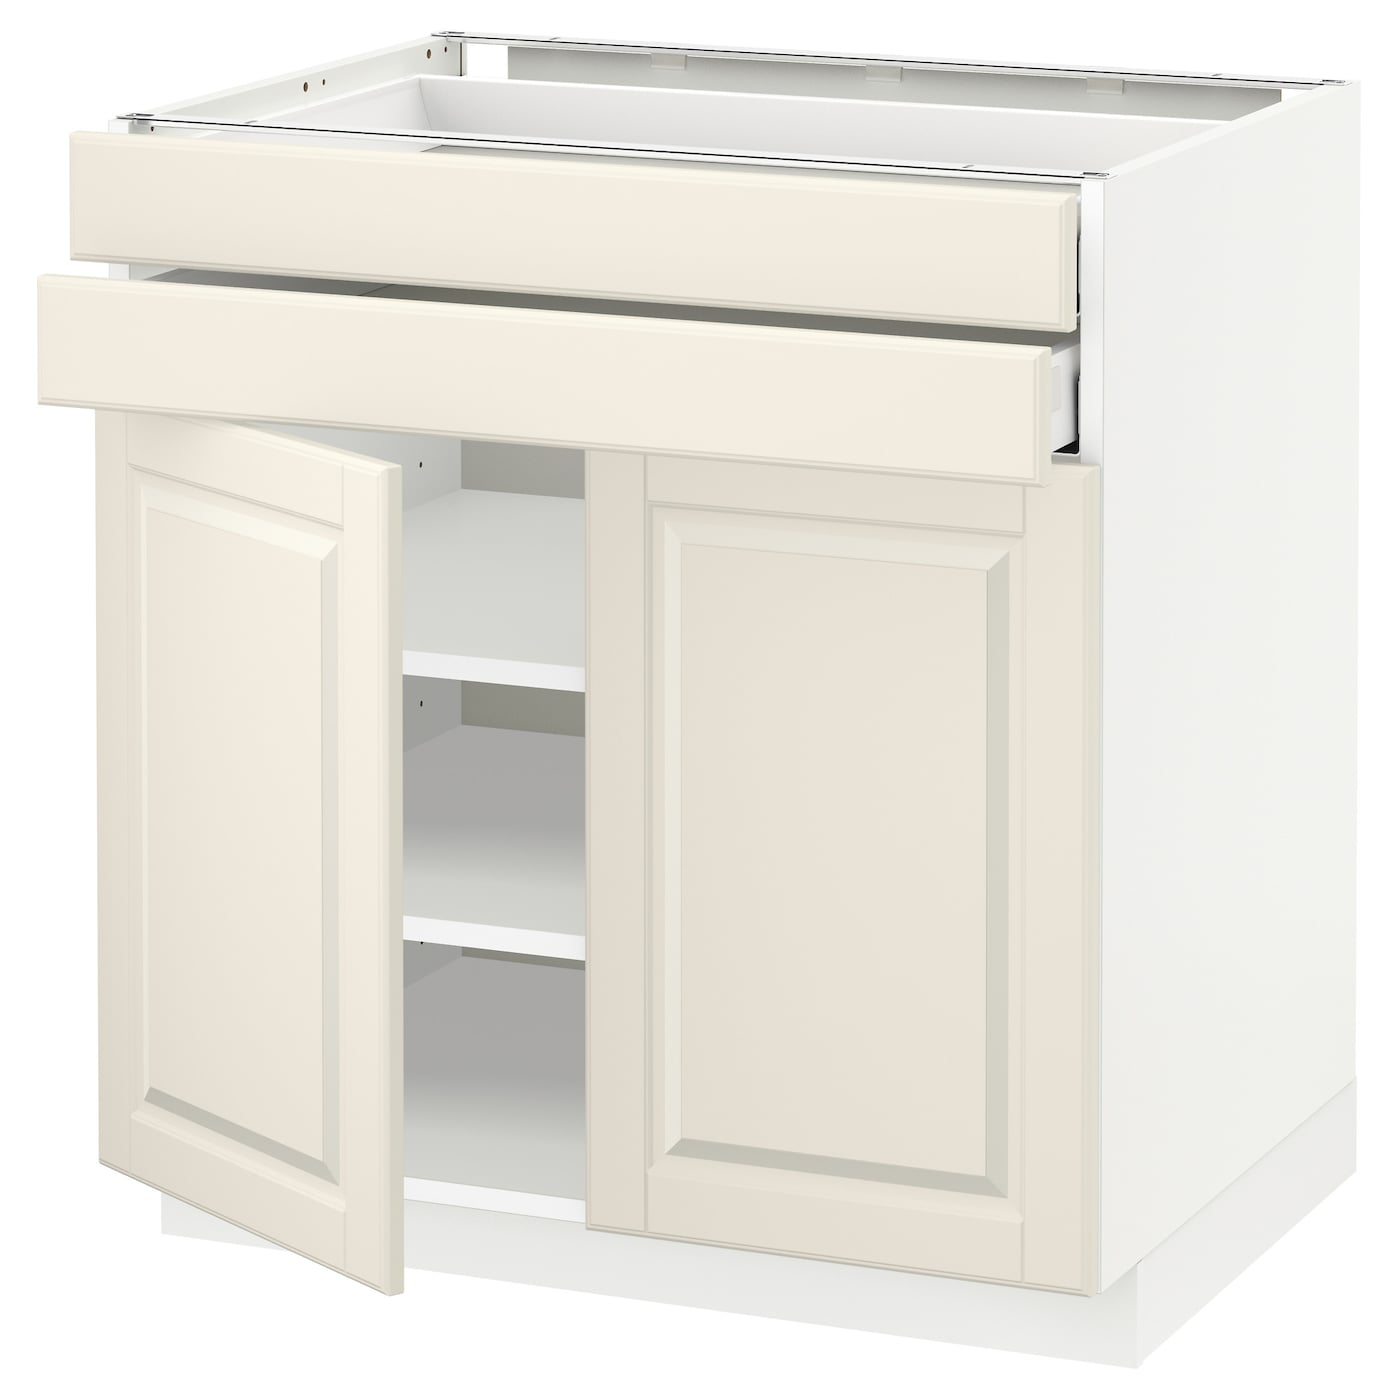 metod maximera base cabinet w 2 doors 2 drawers white bodbyn off white 80 x 60 cm ikea. Black Bedroom Furniture Sets. Home Design Ideas